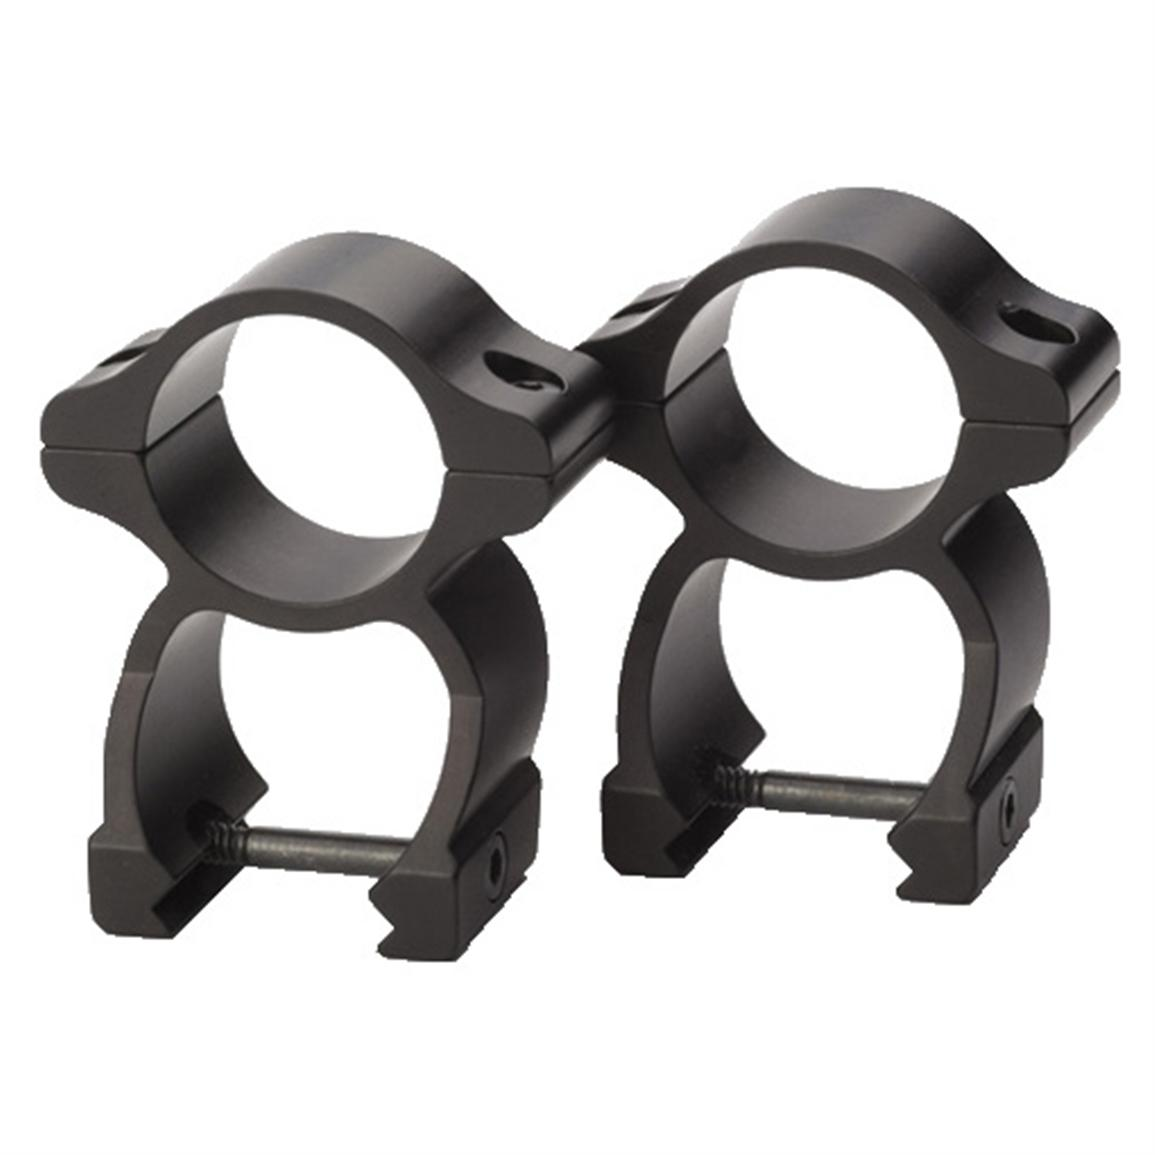 Traditions® Detachable See-Thru Scope Rings, Blued